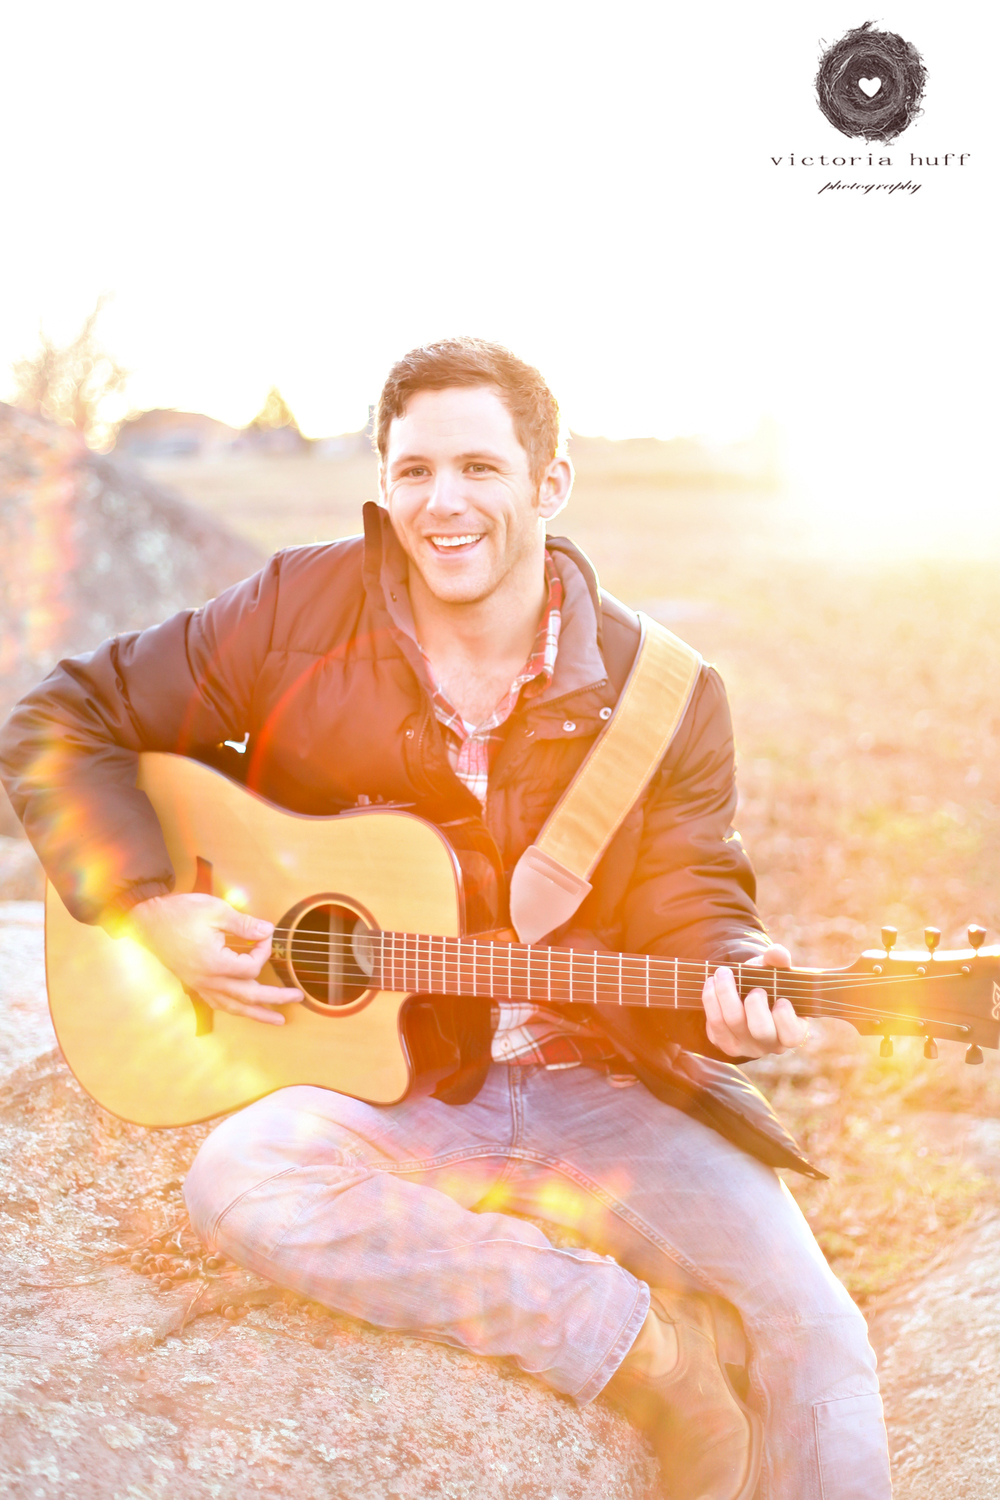 Matt-Lavender-Country-Guitar-Athens-Georgia-Music-sunrise-Photography.jpg